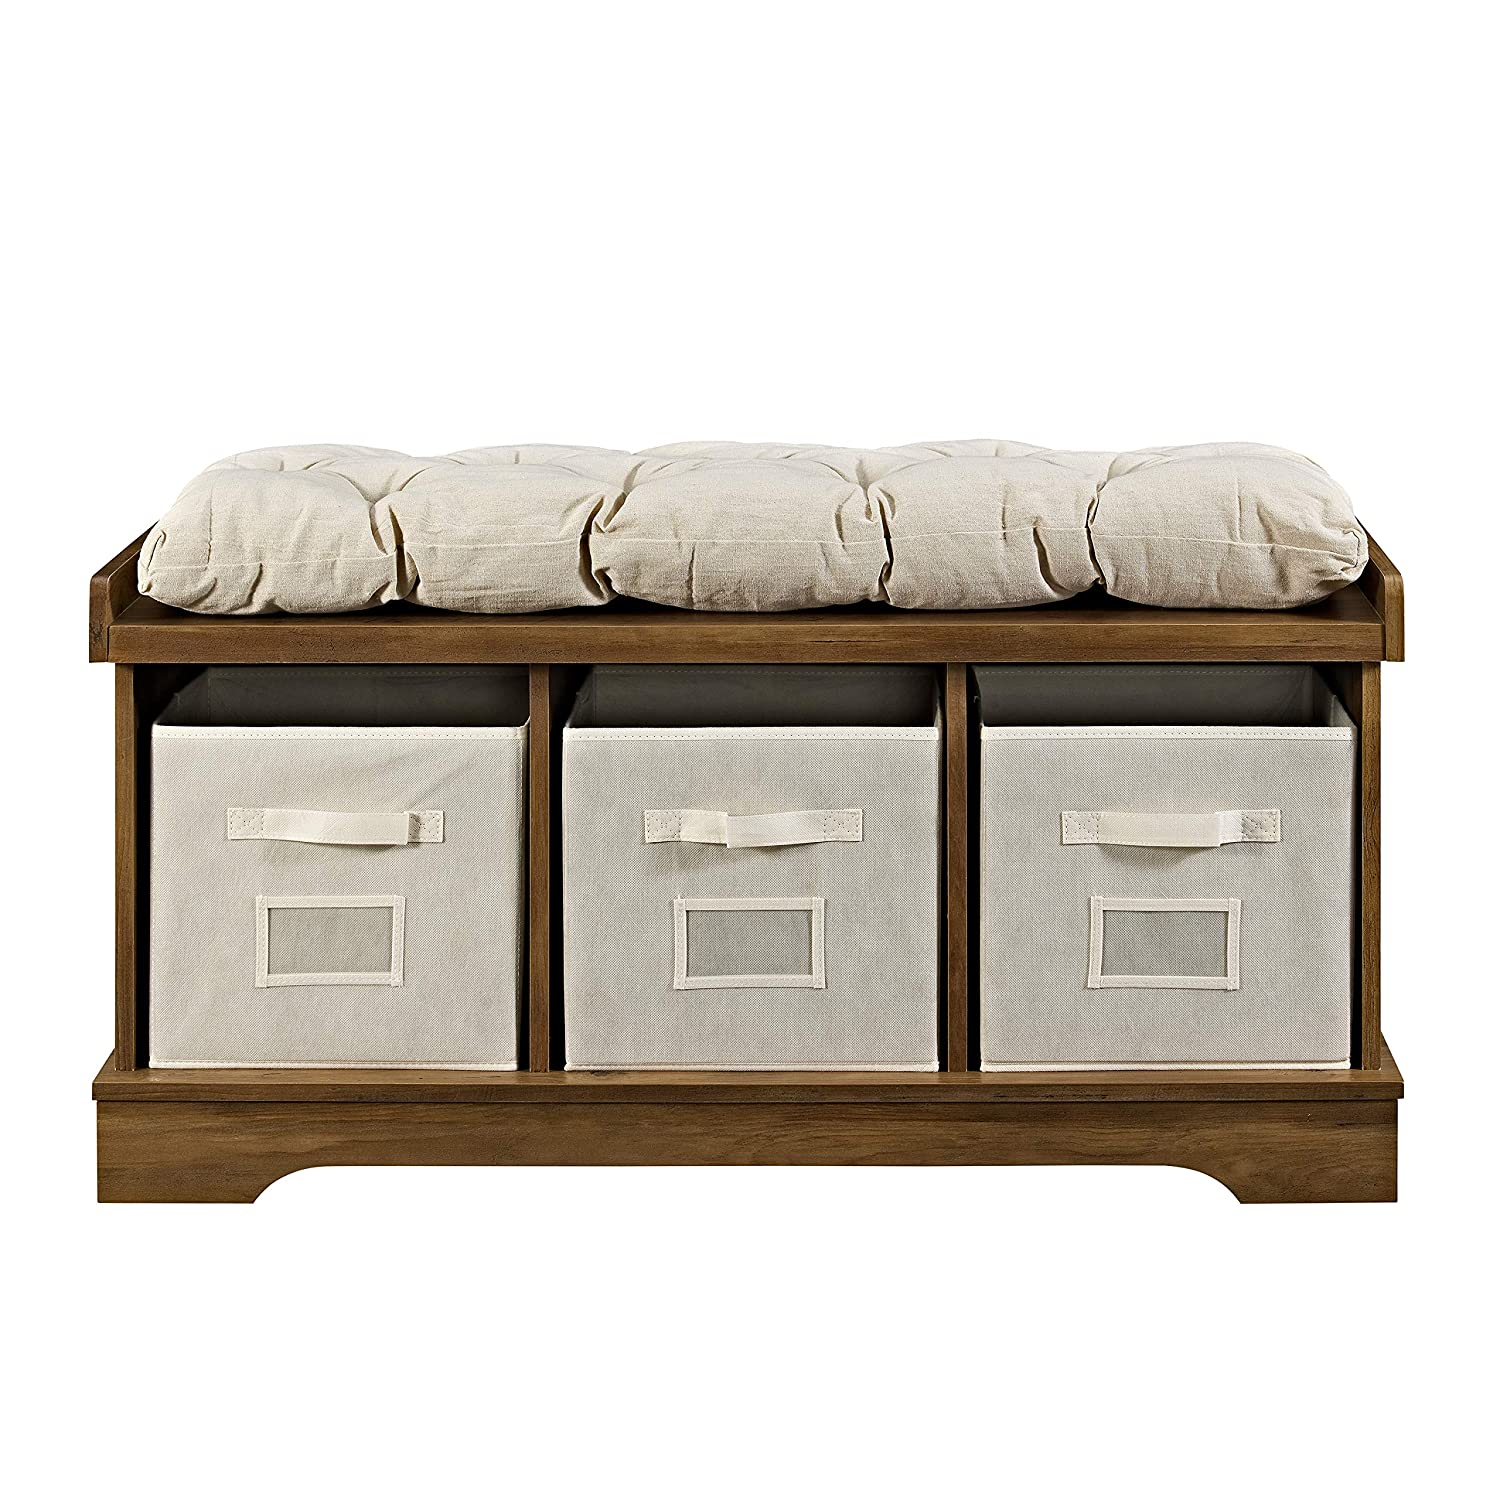 Brown Reclaimed Barnwood Walker Edison Modern Farmhouse Entryway Shoe Storage Bench Totes Upholstered Cushion Hallway Organizer 42 Inch Storage Benches Home Kitchen